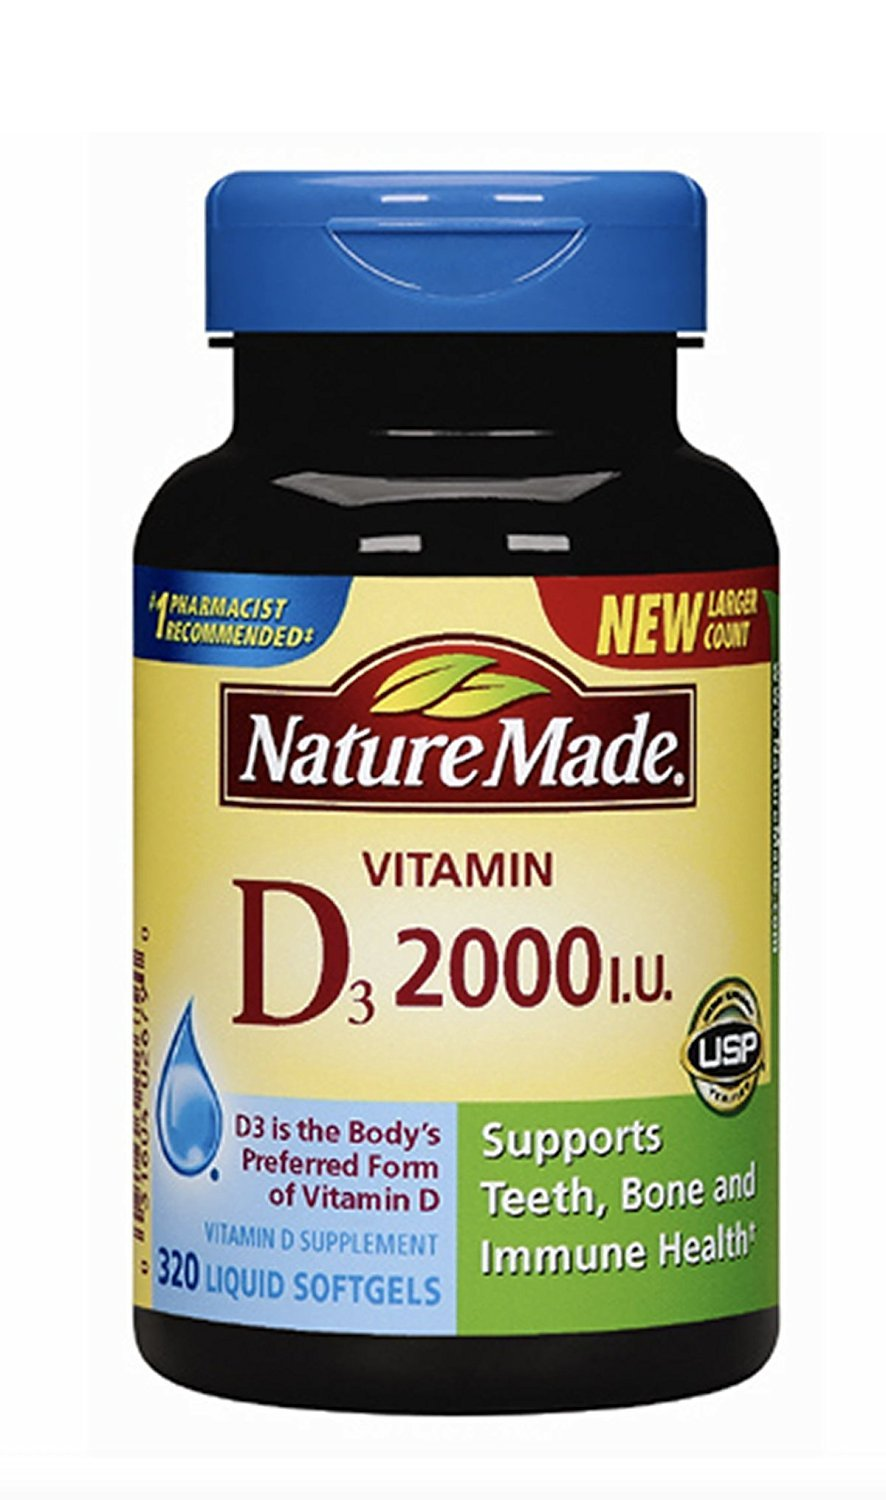 Nature Made Vitamin D3 2000 (50mcg) IU Softgels 320 Ct (Packaging may vary)